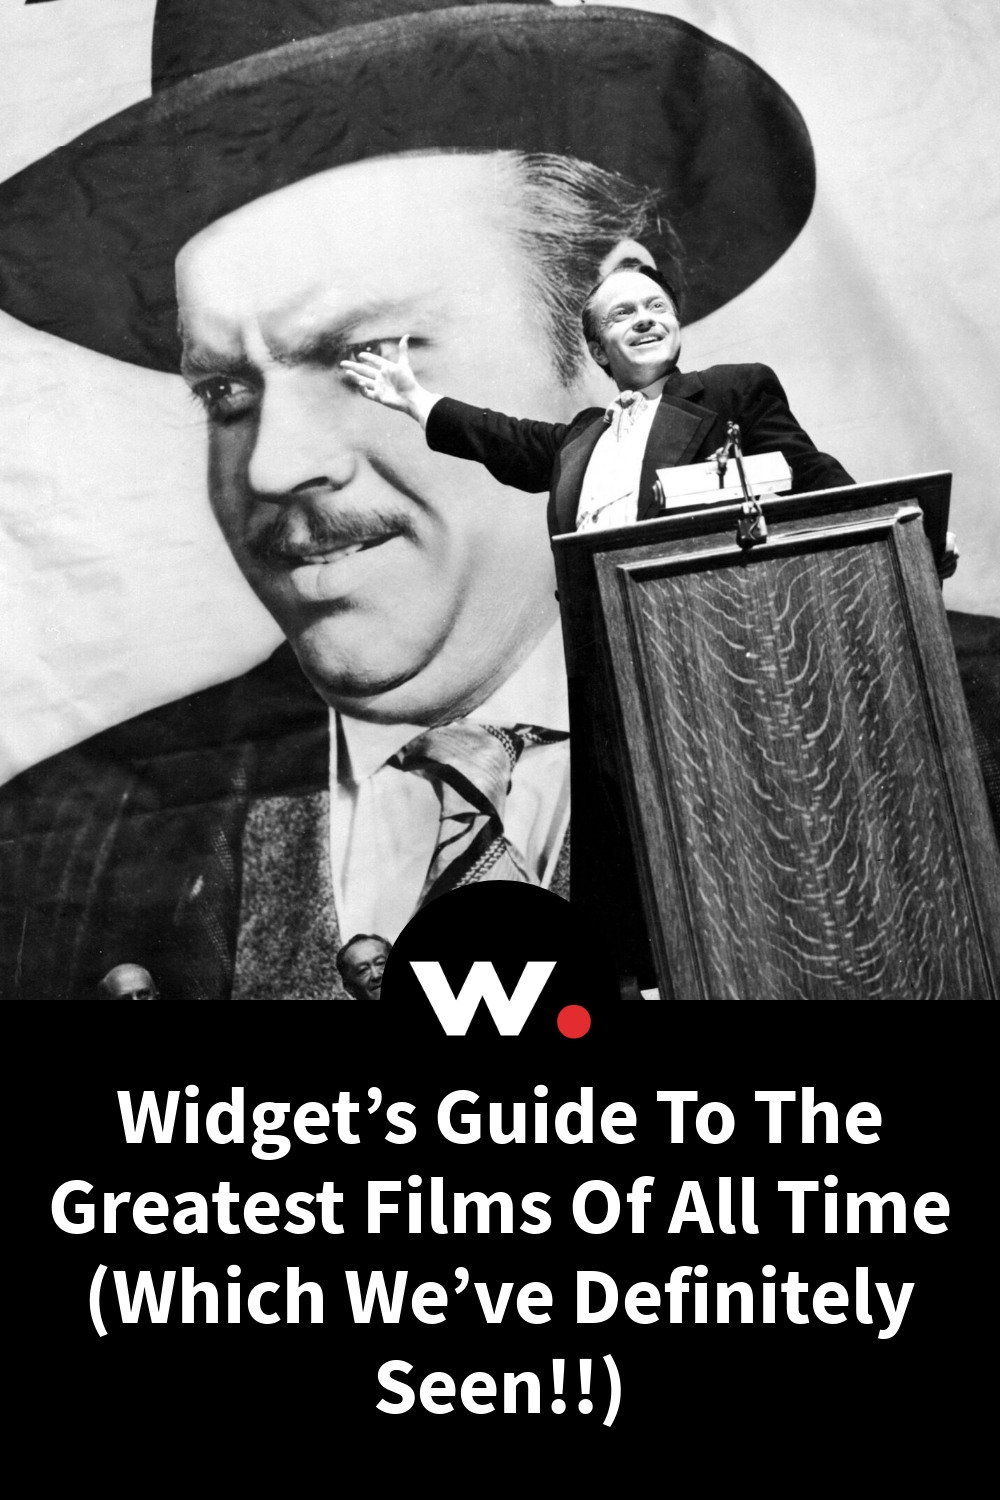 Widget's Guide To The Greatest Films Of All Time (Which We've Definitely Seen!!)